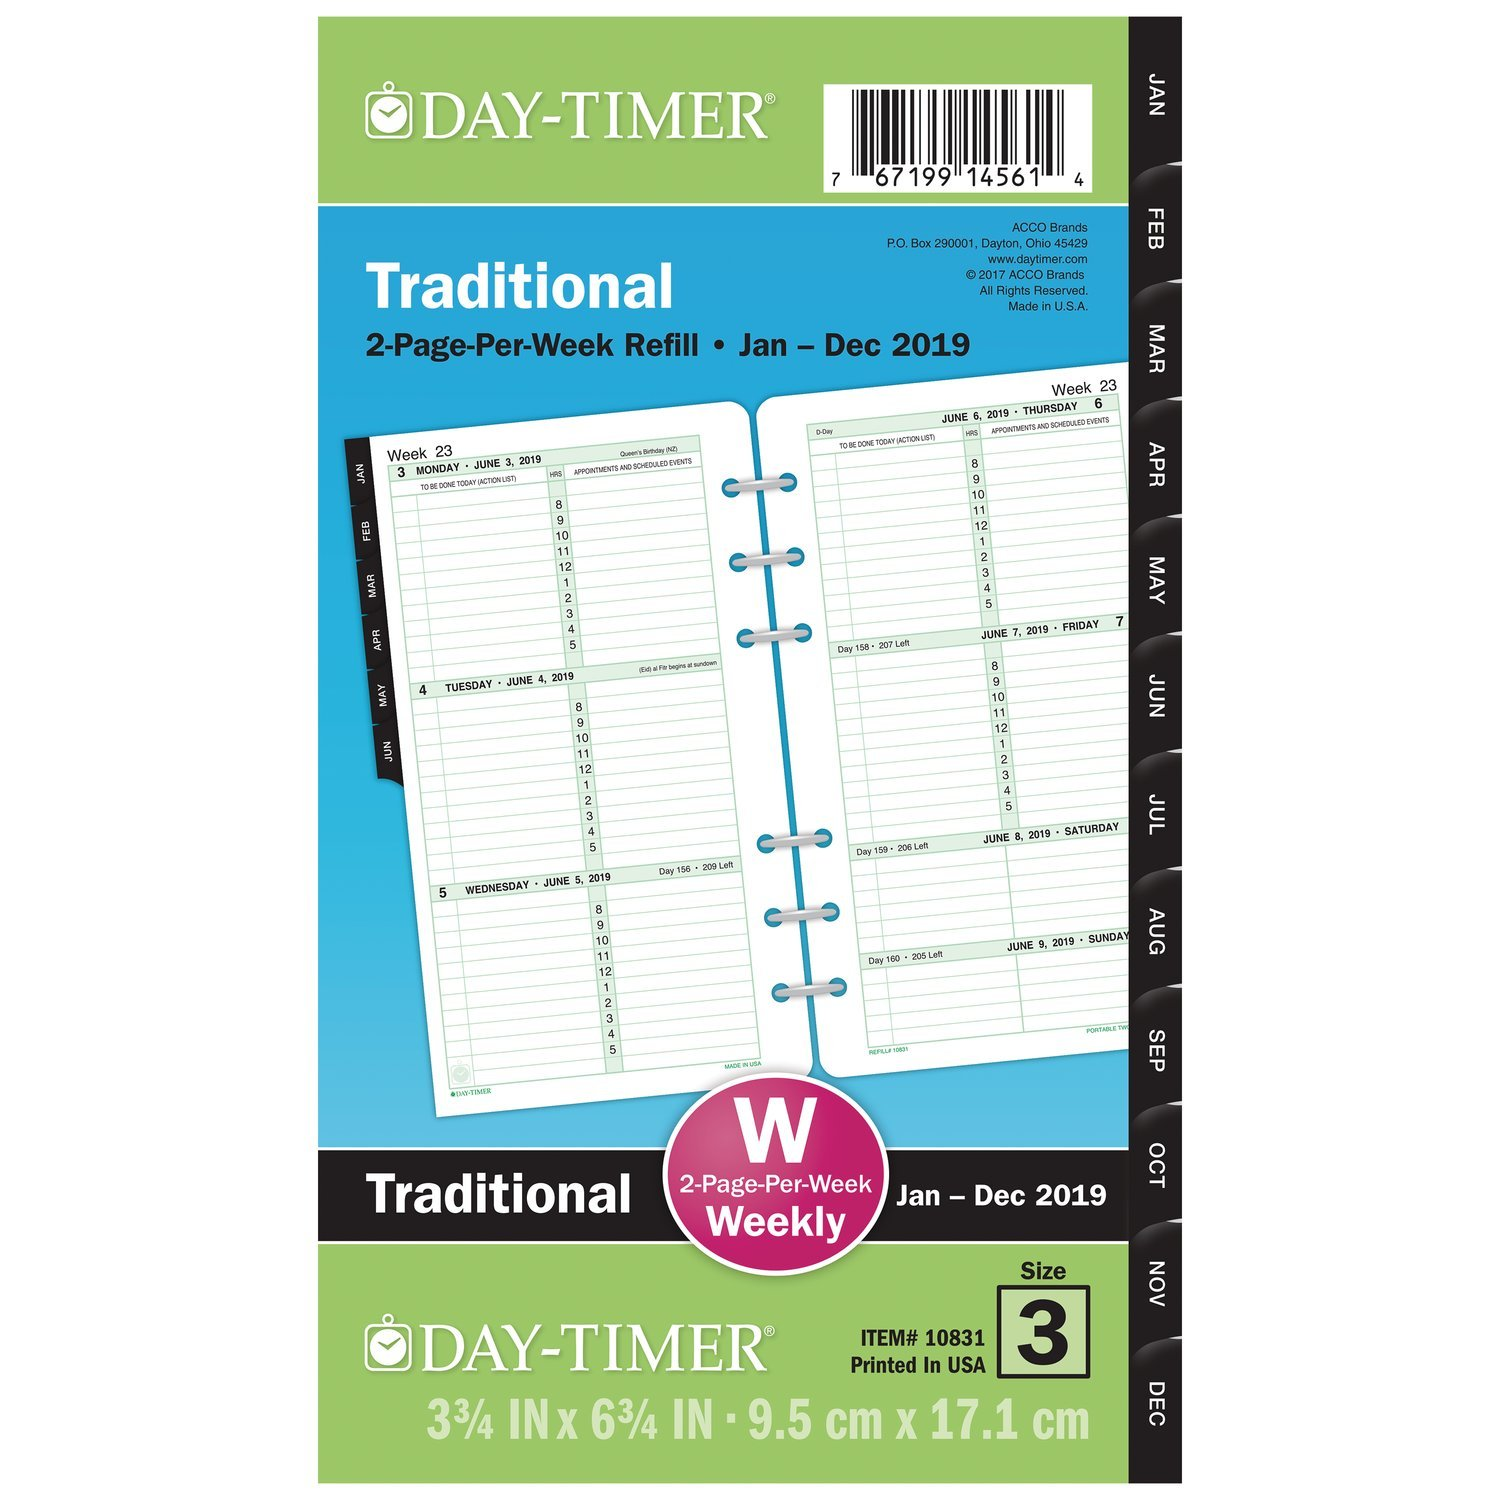 Day-Timer Refill 2019, Two Page Per Week, January 2019 - December 2019, 3-3/4'' x 6-3/4'', Loose Leaf, Portable Size, Original (10831)